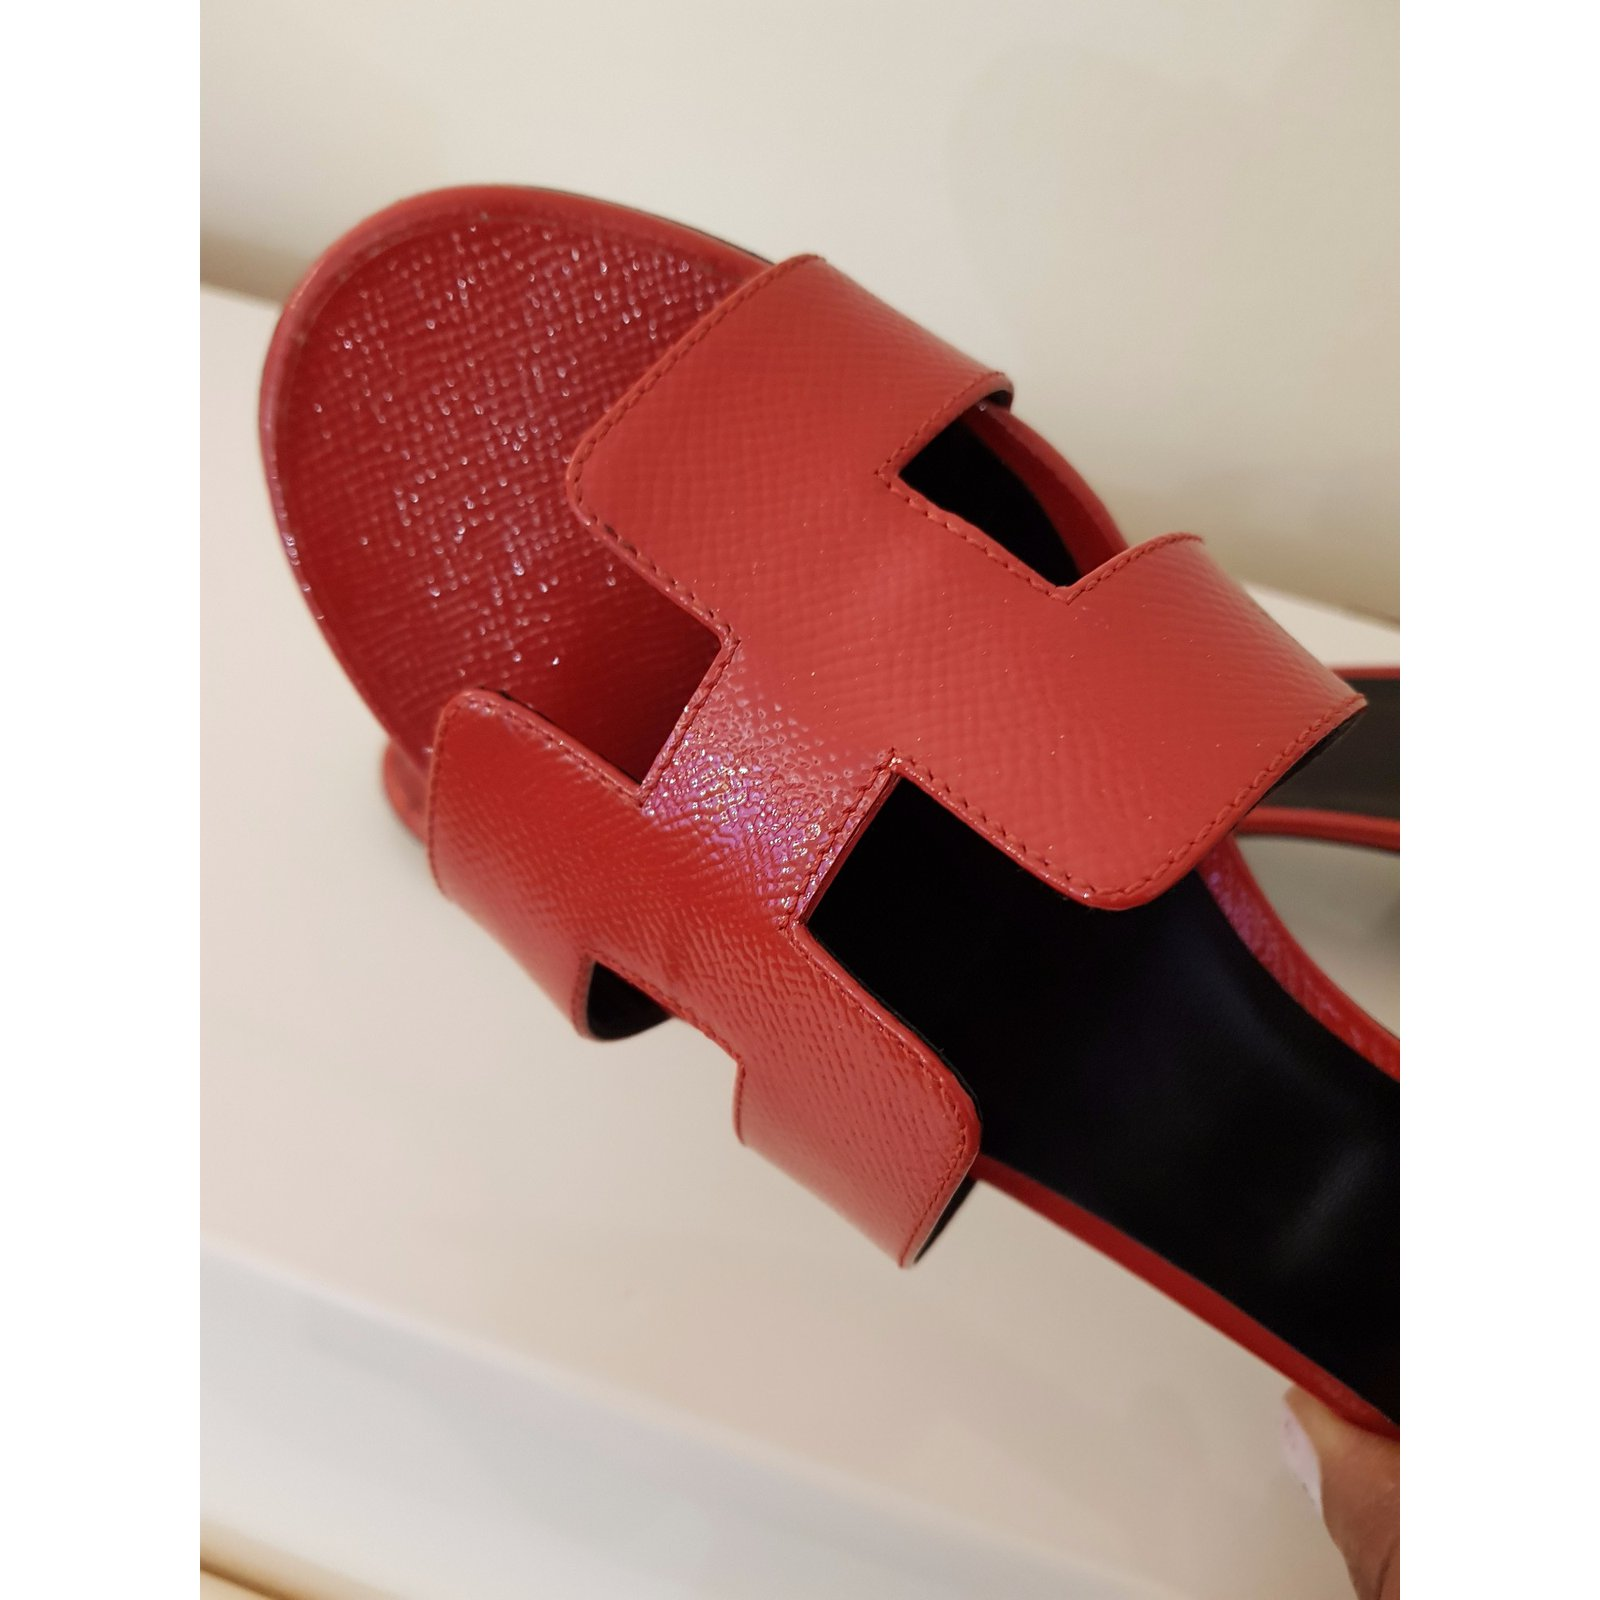 e9ca31dfcd97 Facebook · Pin This. Hermès OASIS EPSOM VERNIS Sandals Patent leather Red  ...